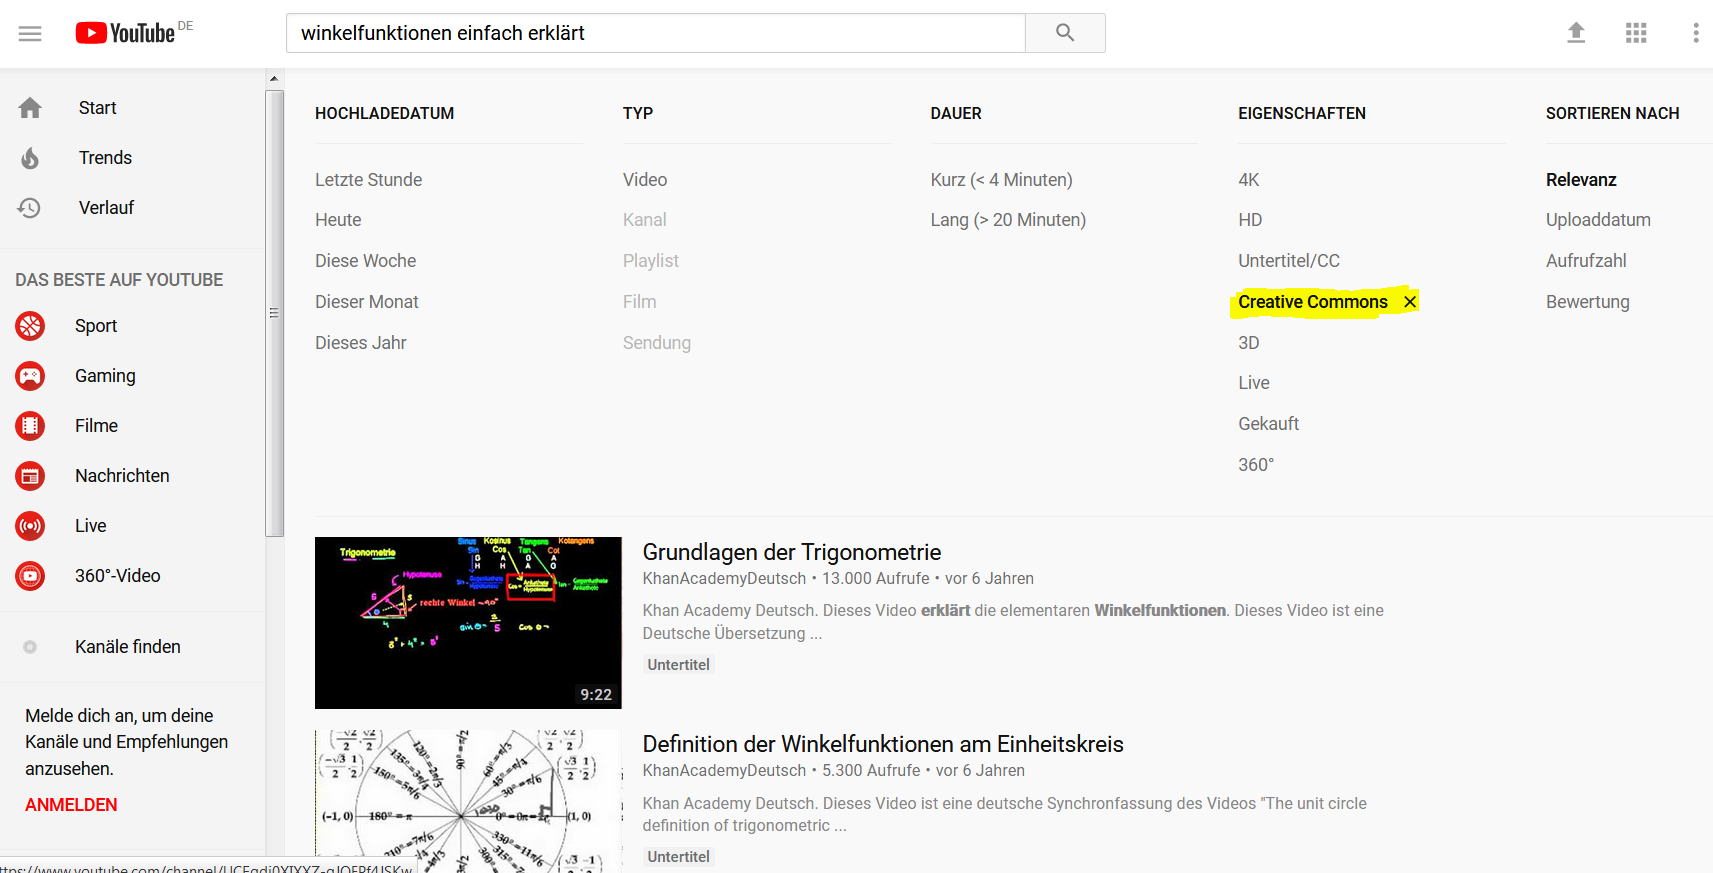 Screenshot, Filter bei YouTube-Suche